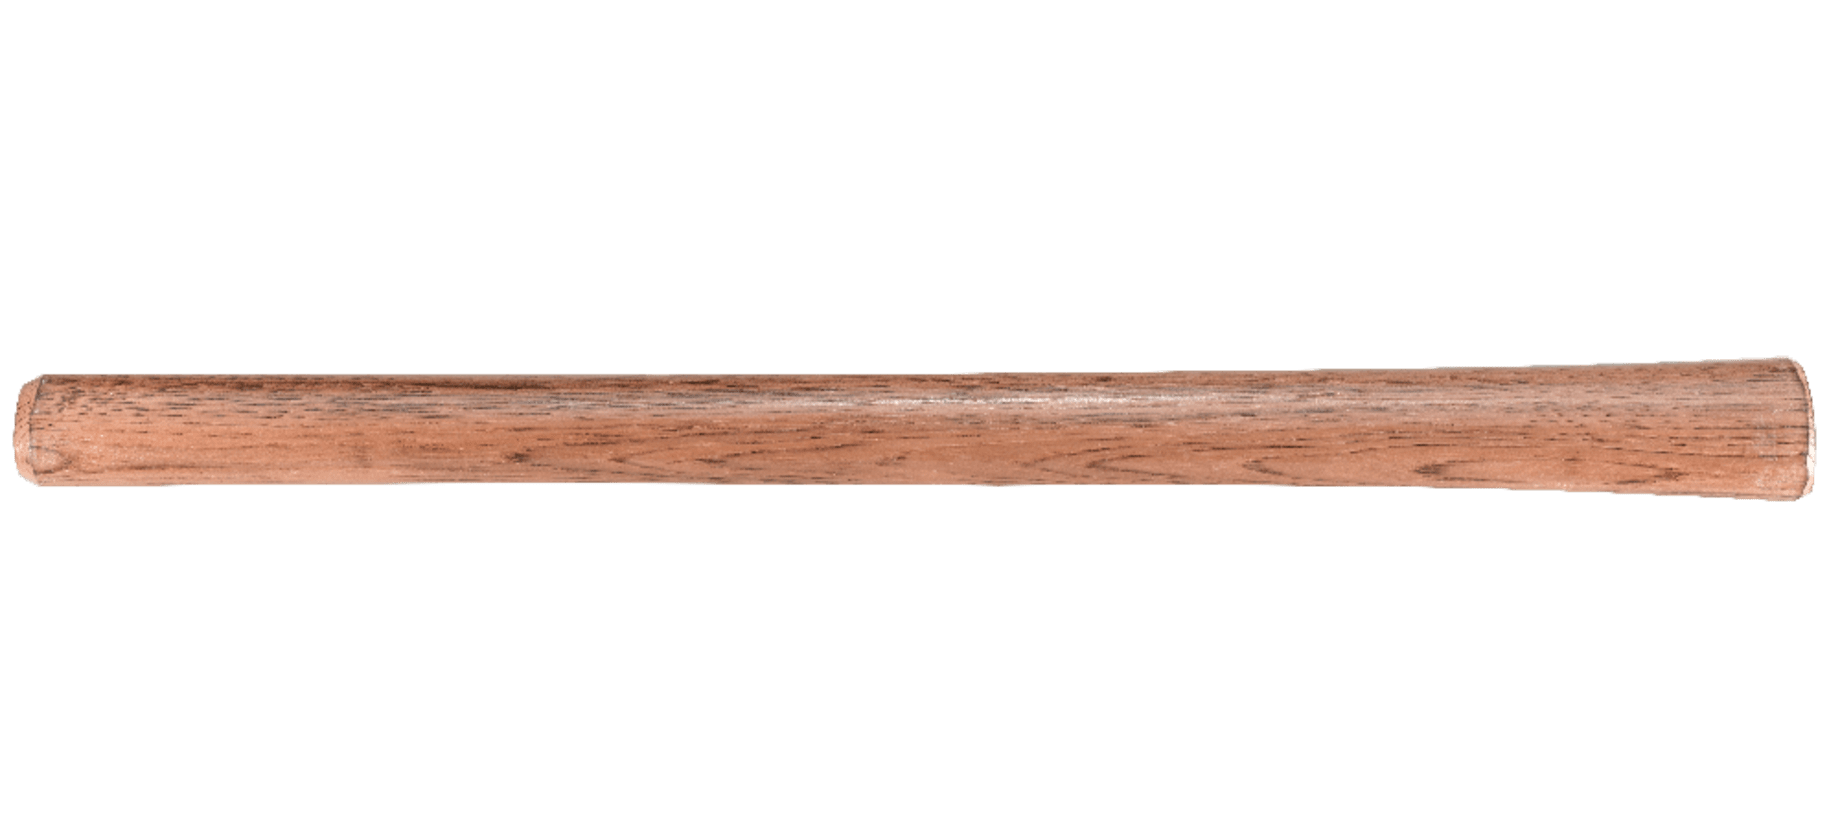 Woods T Hawk Replacement Tennessee Hickory Wood Handle